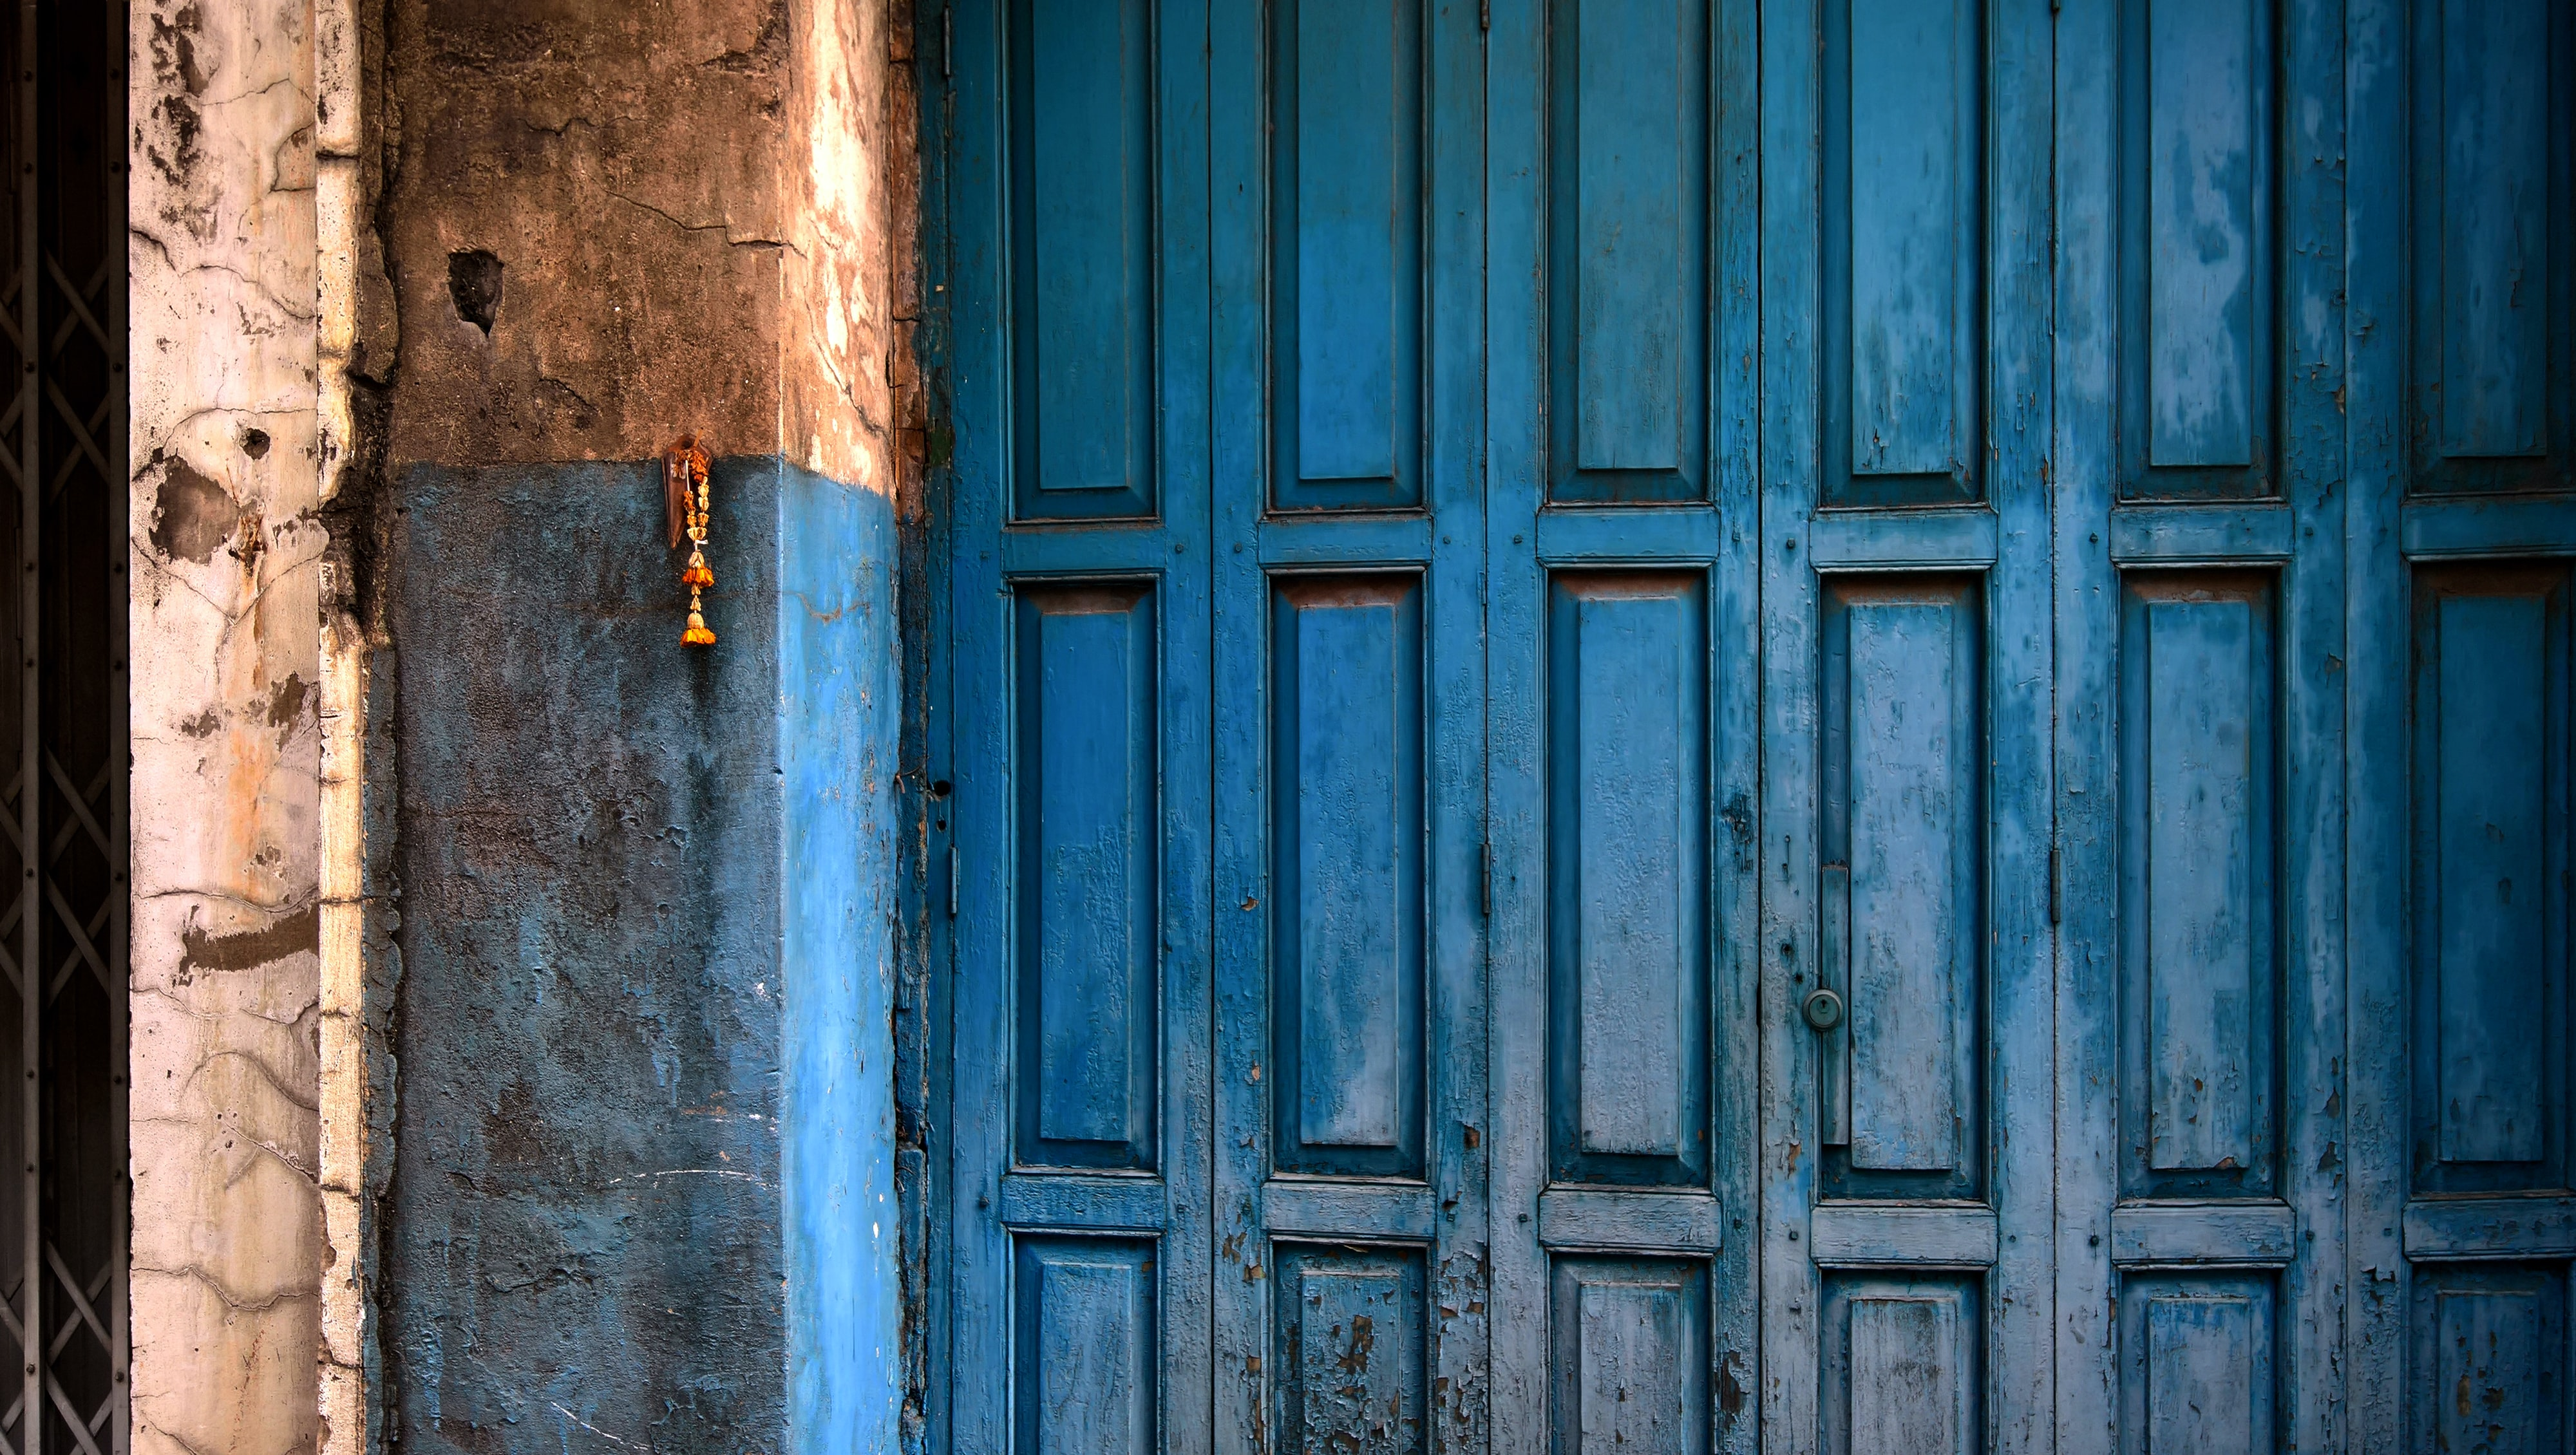 blue wooden door with panels beside blue and brown wooden concrete